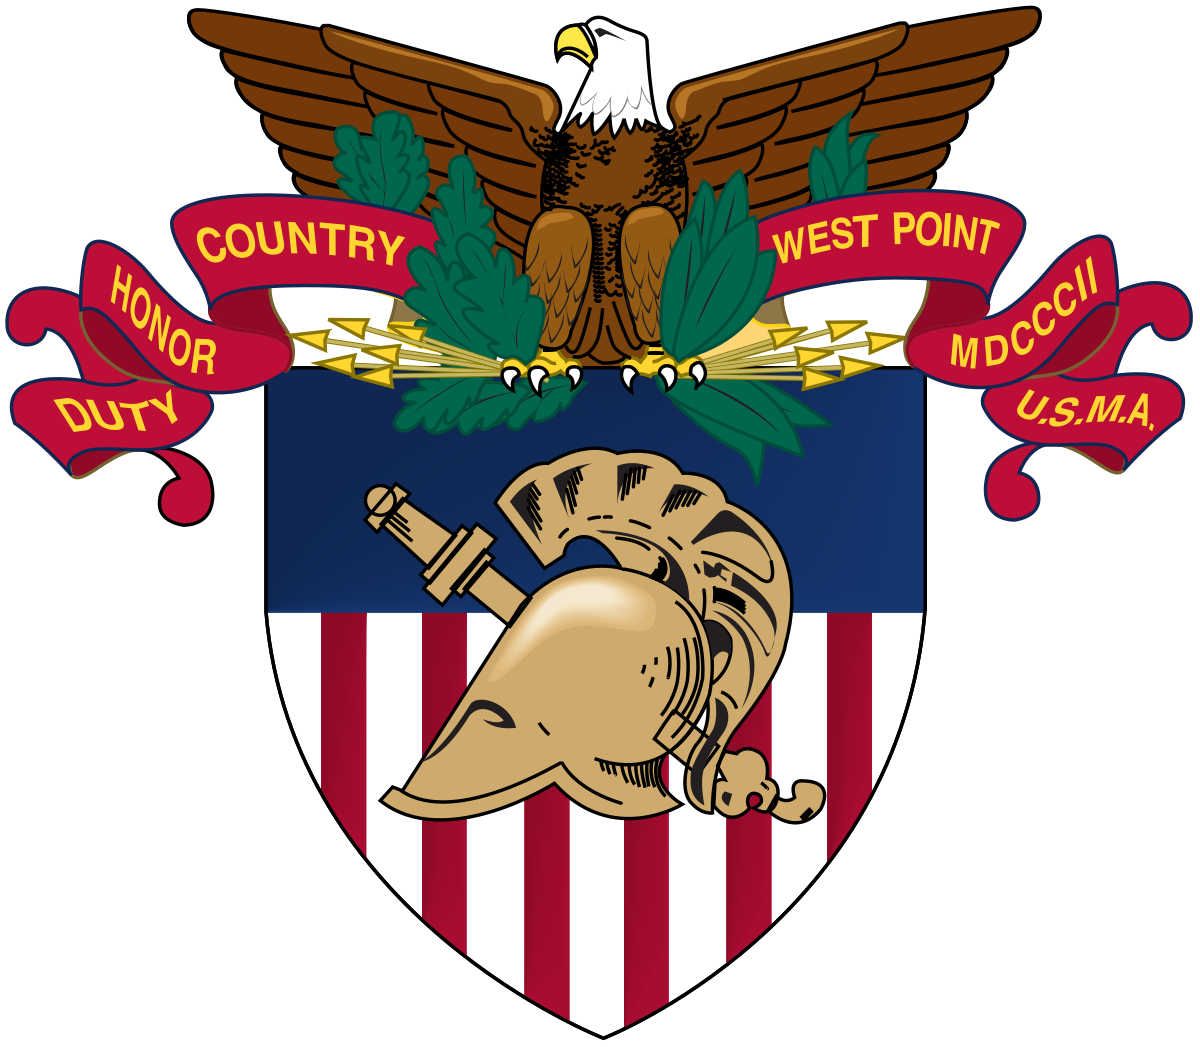 United States Military Academy.